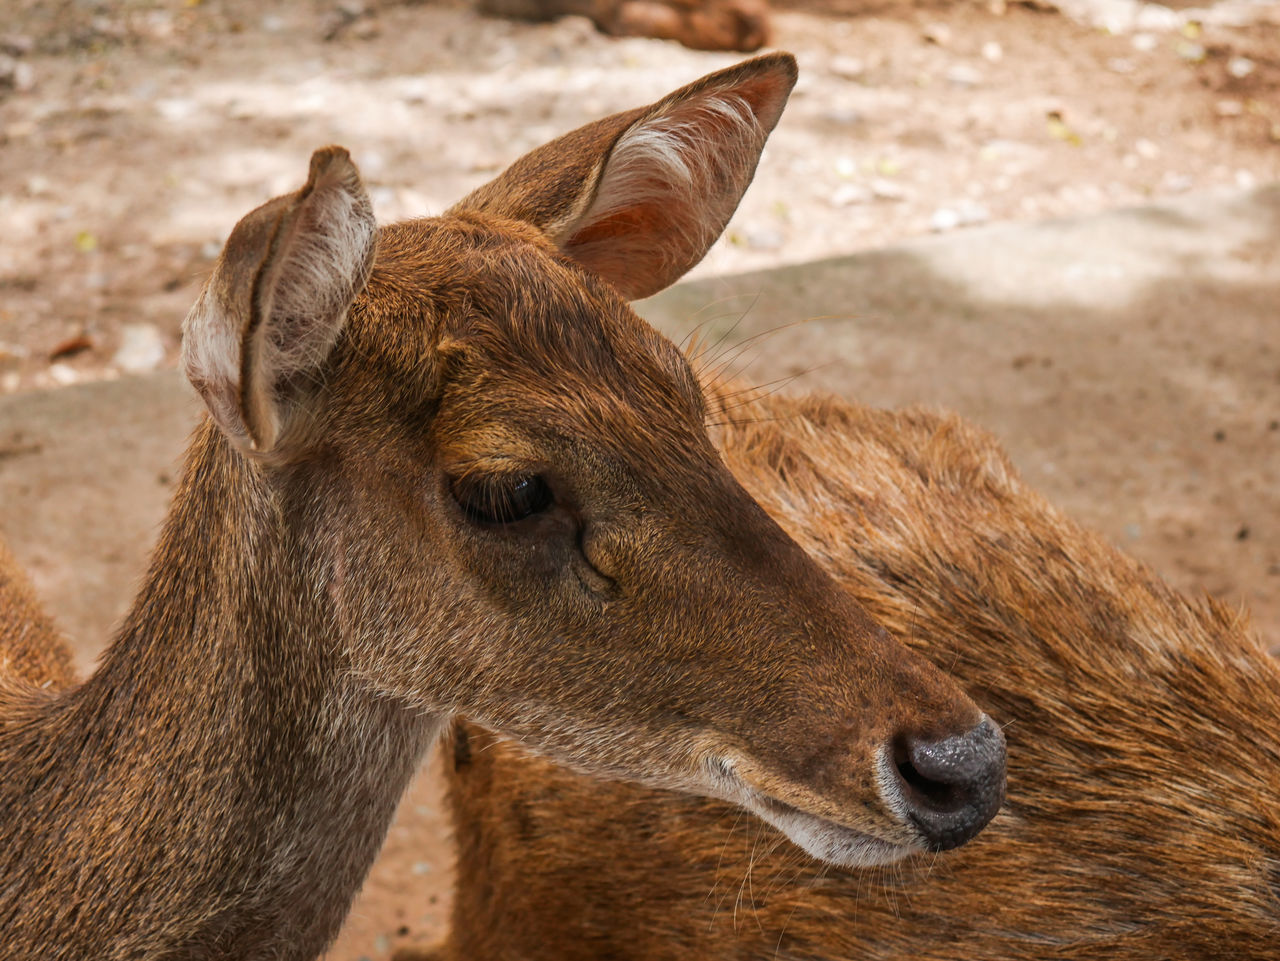 animal themes, animals in the wild, focus on foreground, mammal, one animal, animal wildlife, day, outdoors, no people, nature, close-up, portrait